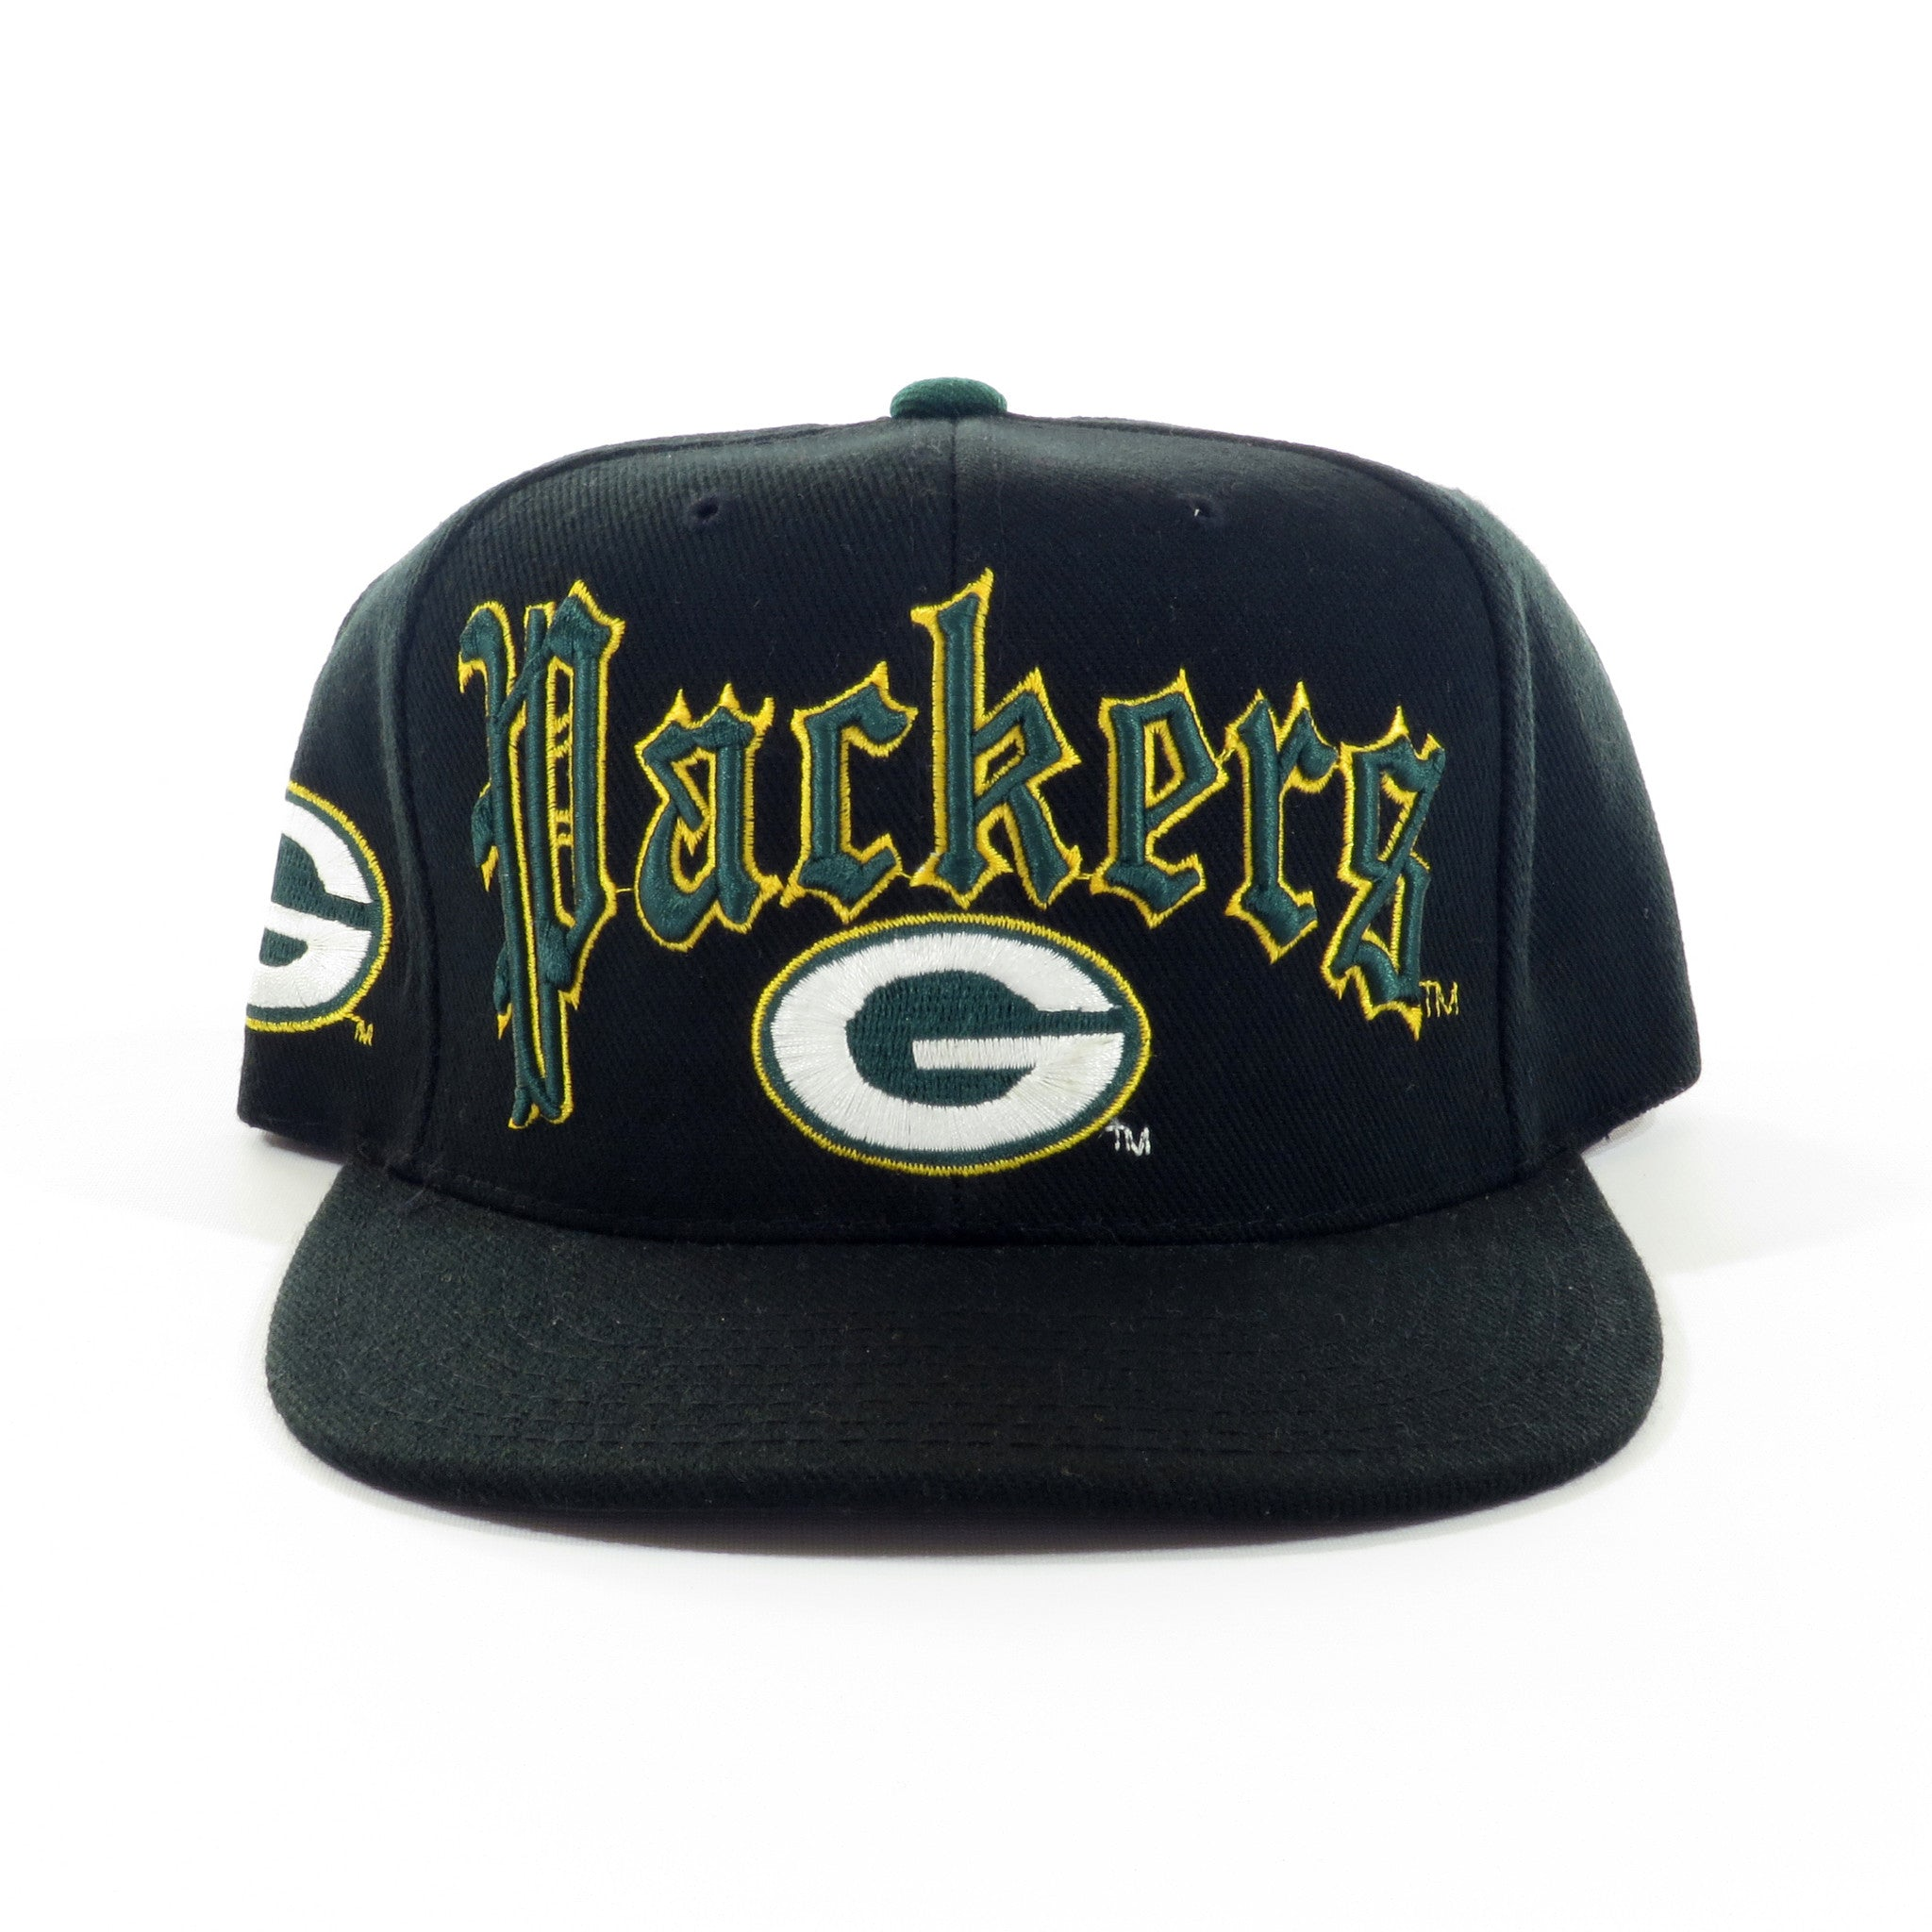 Green Bay Packers Snapback Hat